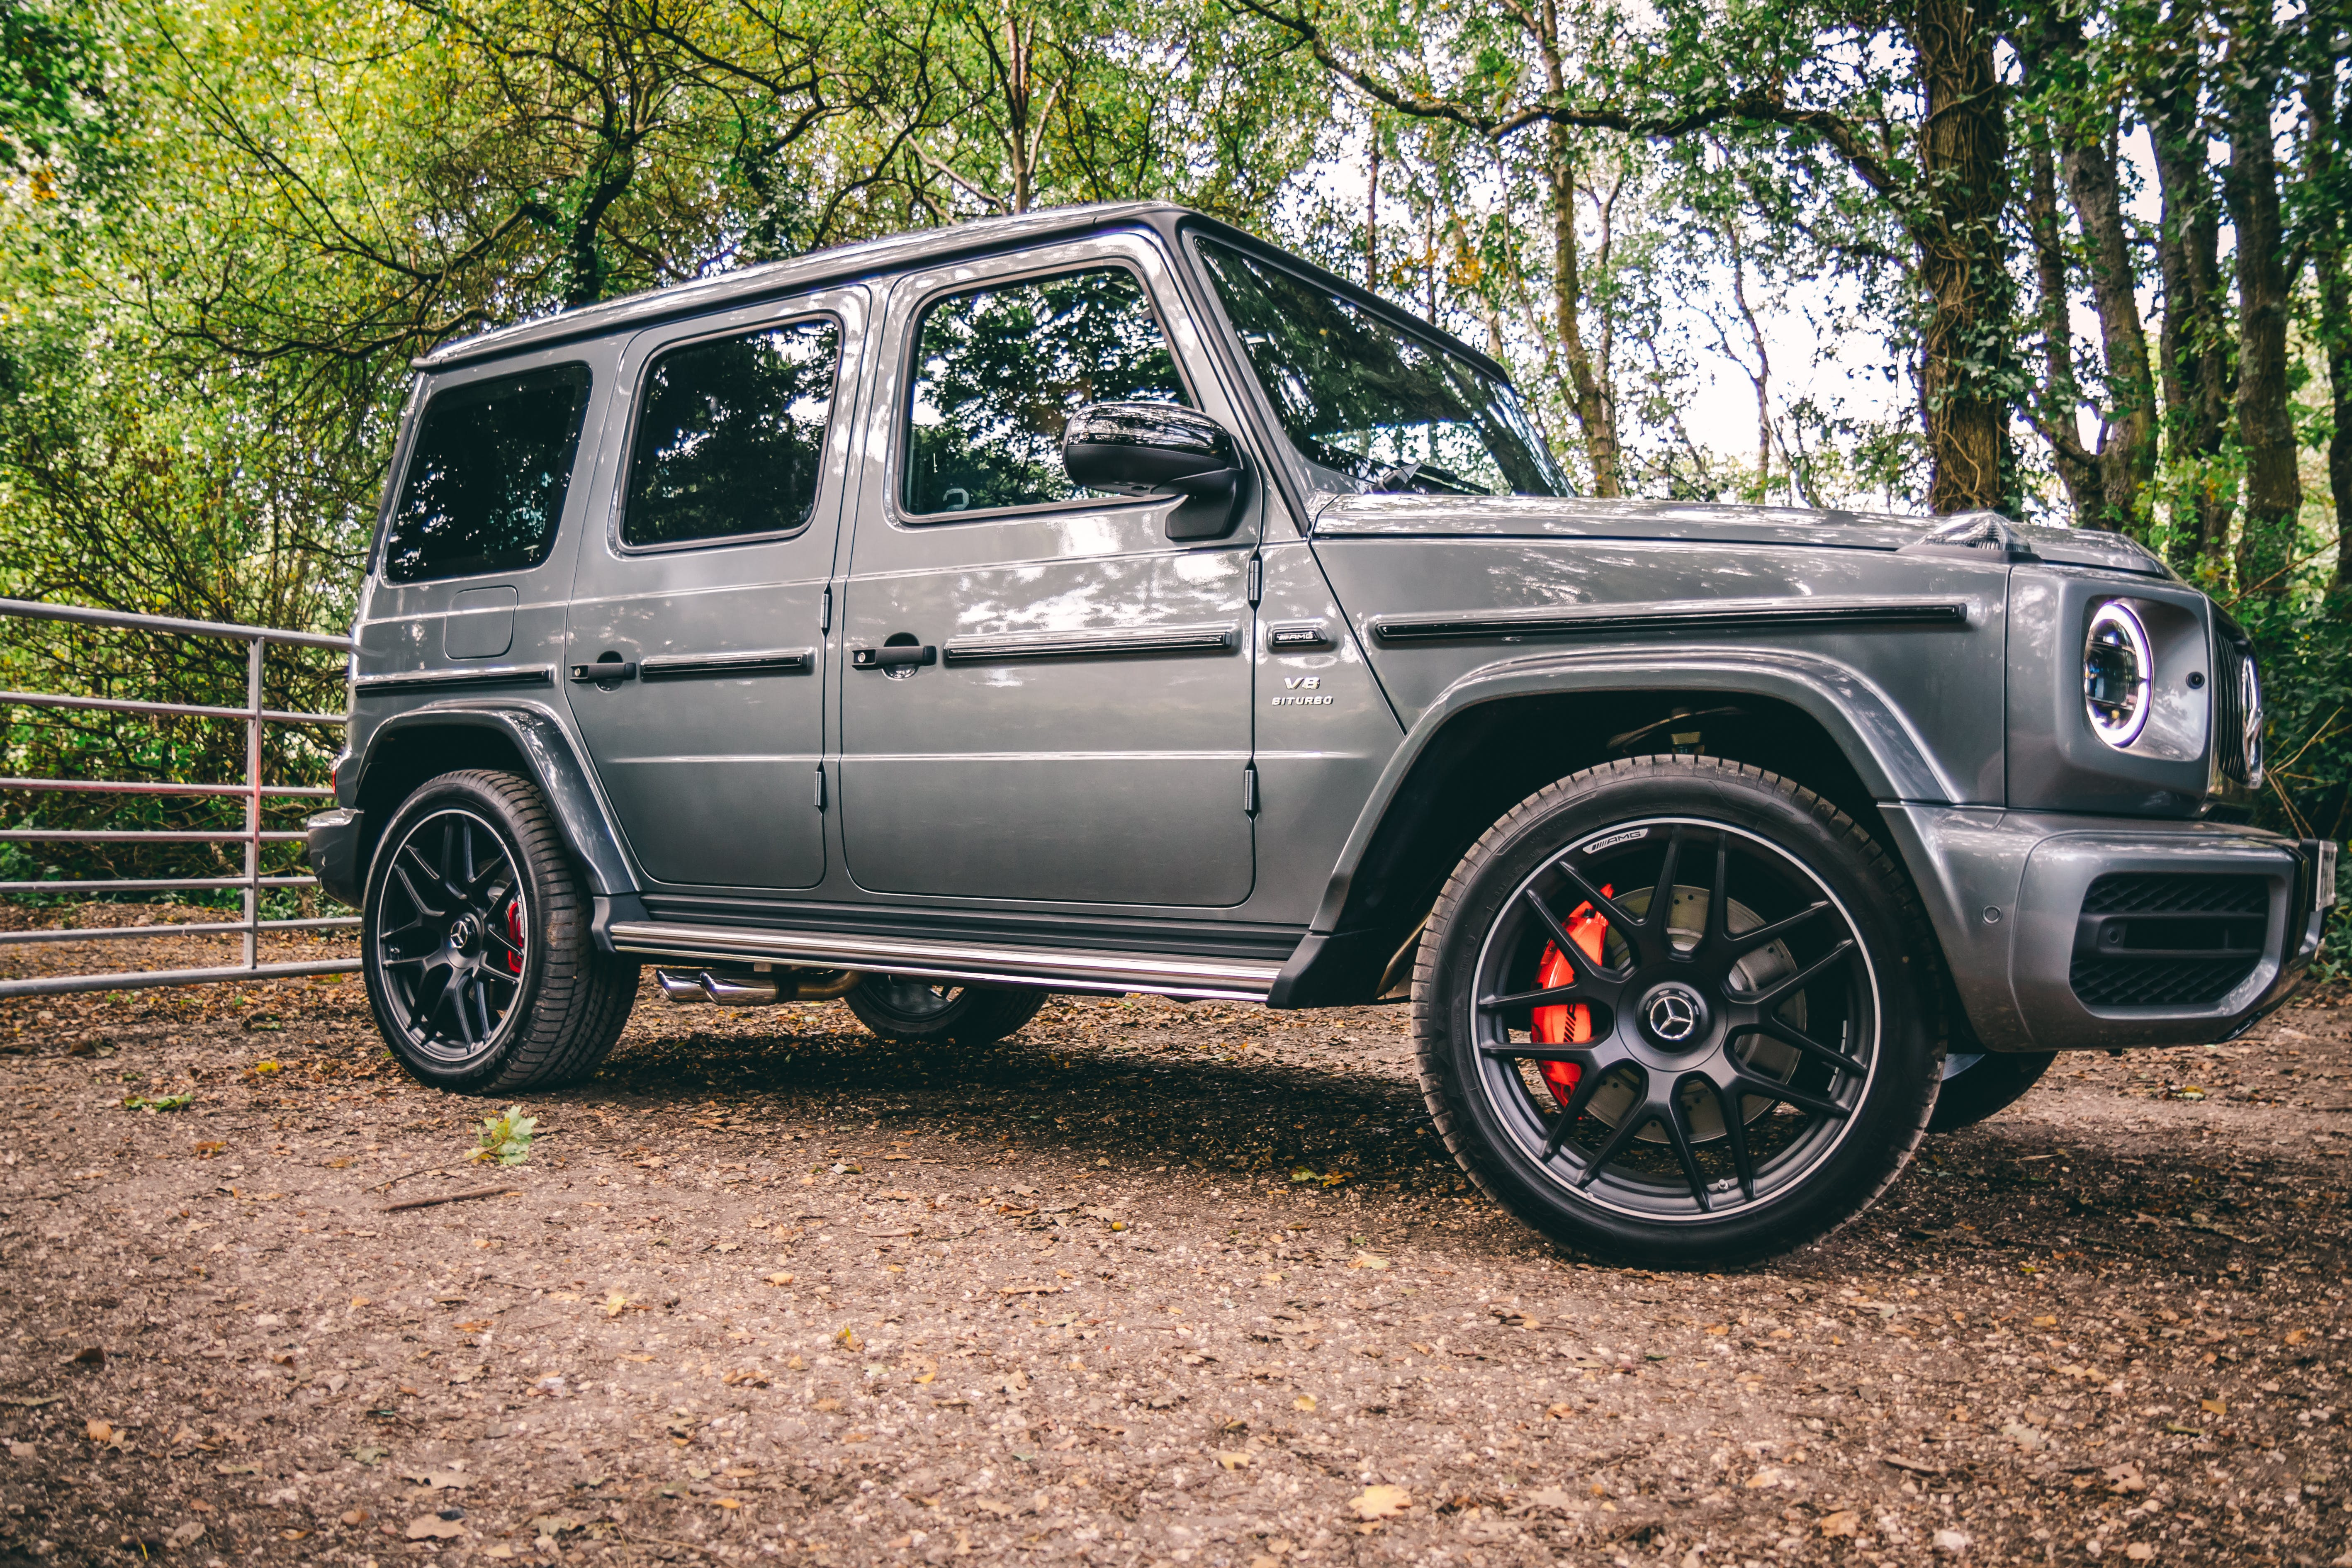 Photo of Mercedes-Benz G-Class Parked on Dirt Road